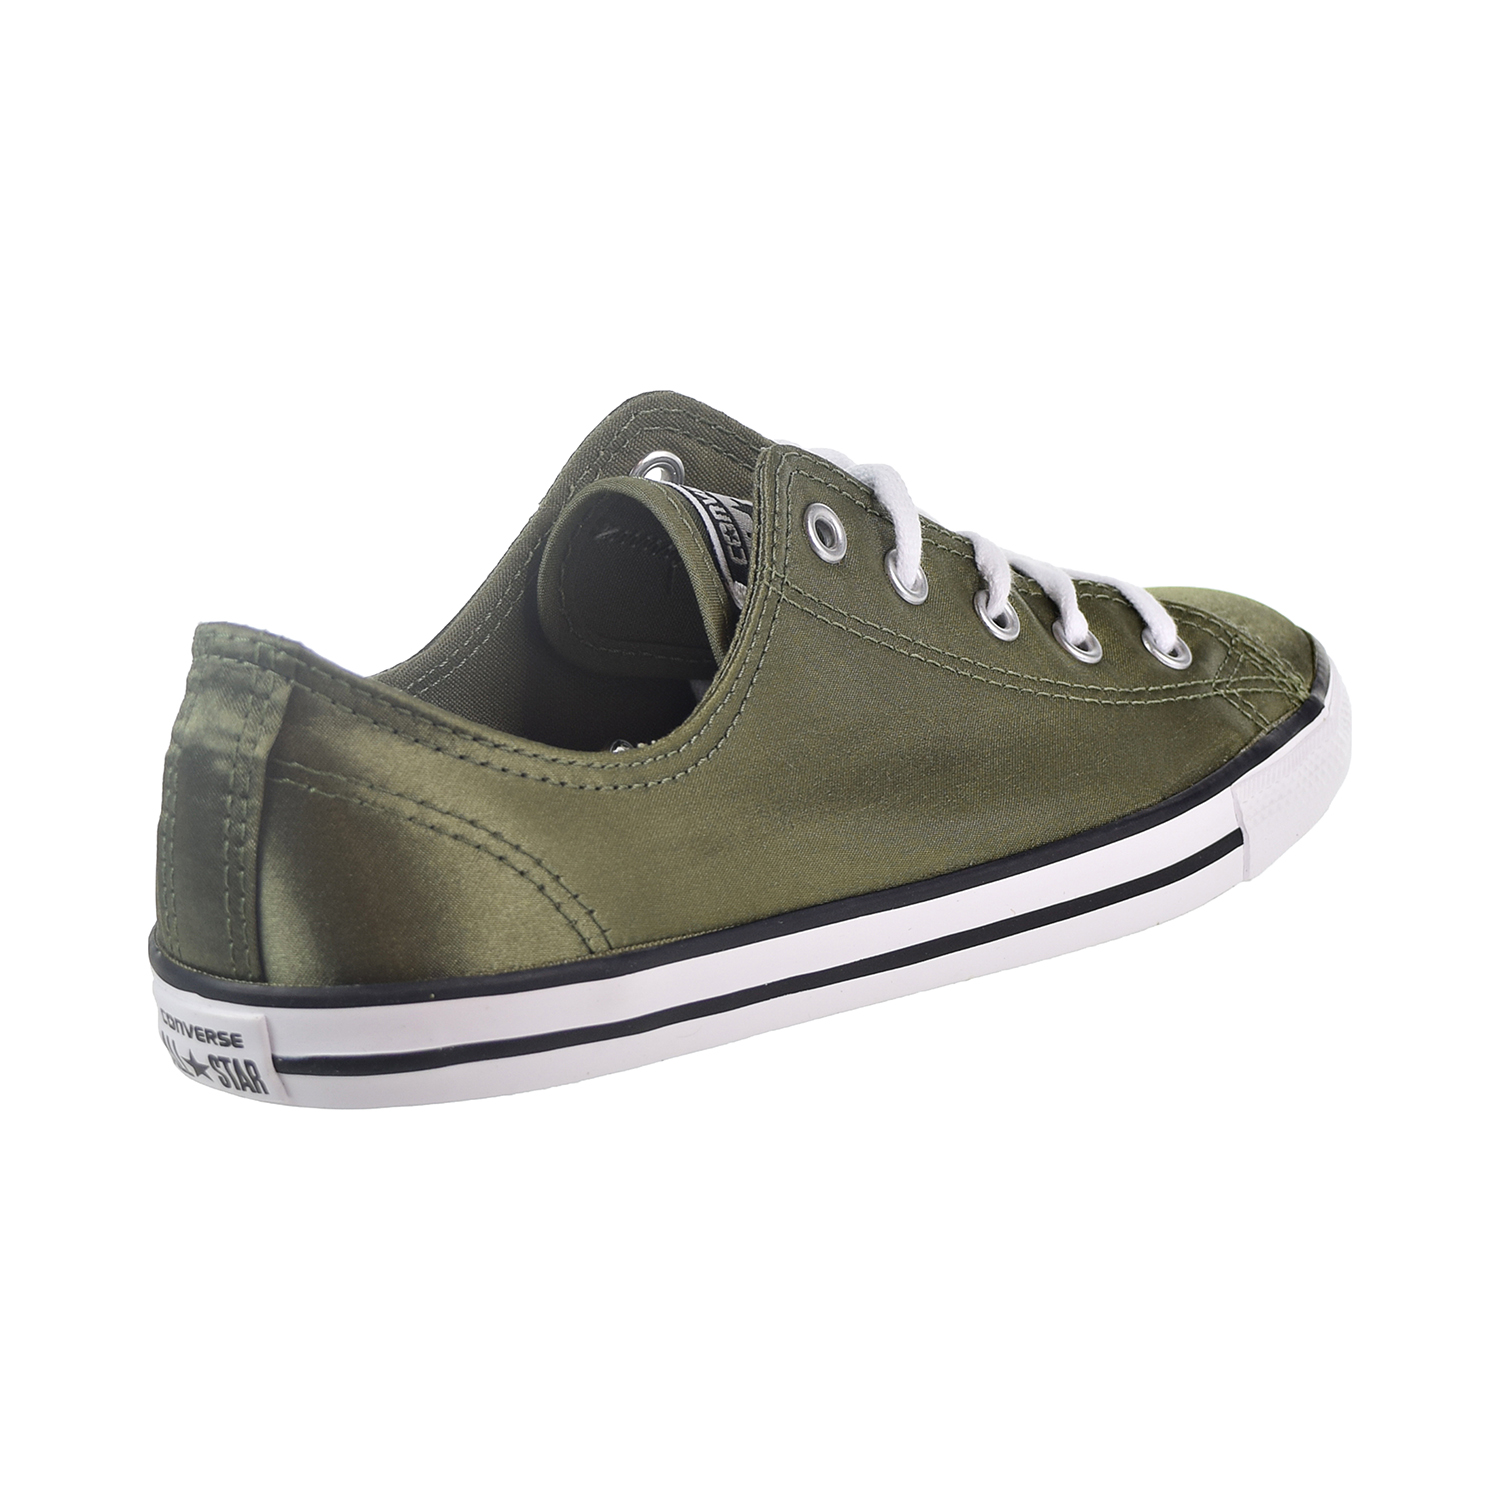 2271858eec55 Converse Chuck Taylor All Star Dainty OX Women s Shoes Medium Olive White  Black 557976f